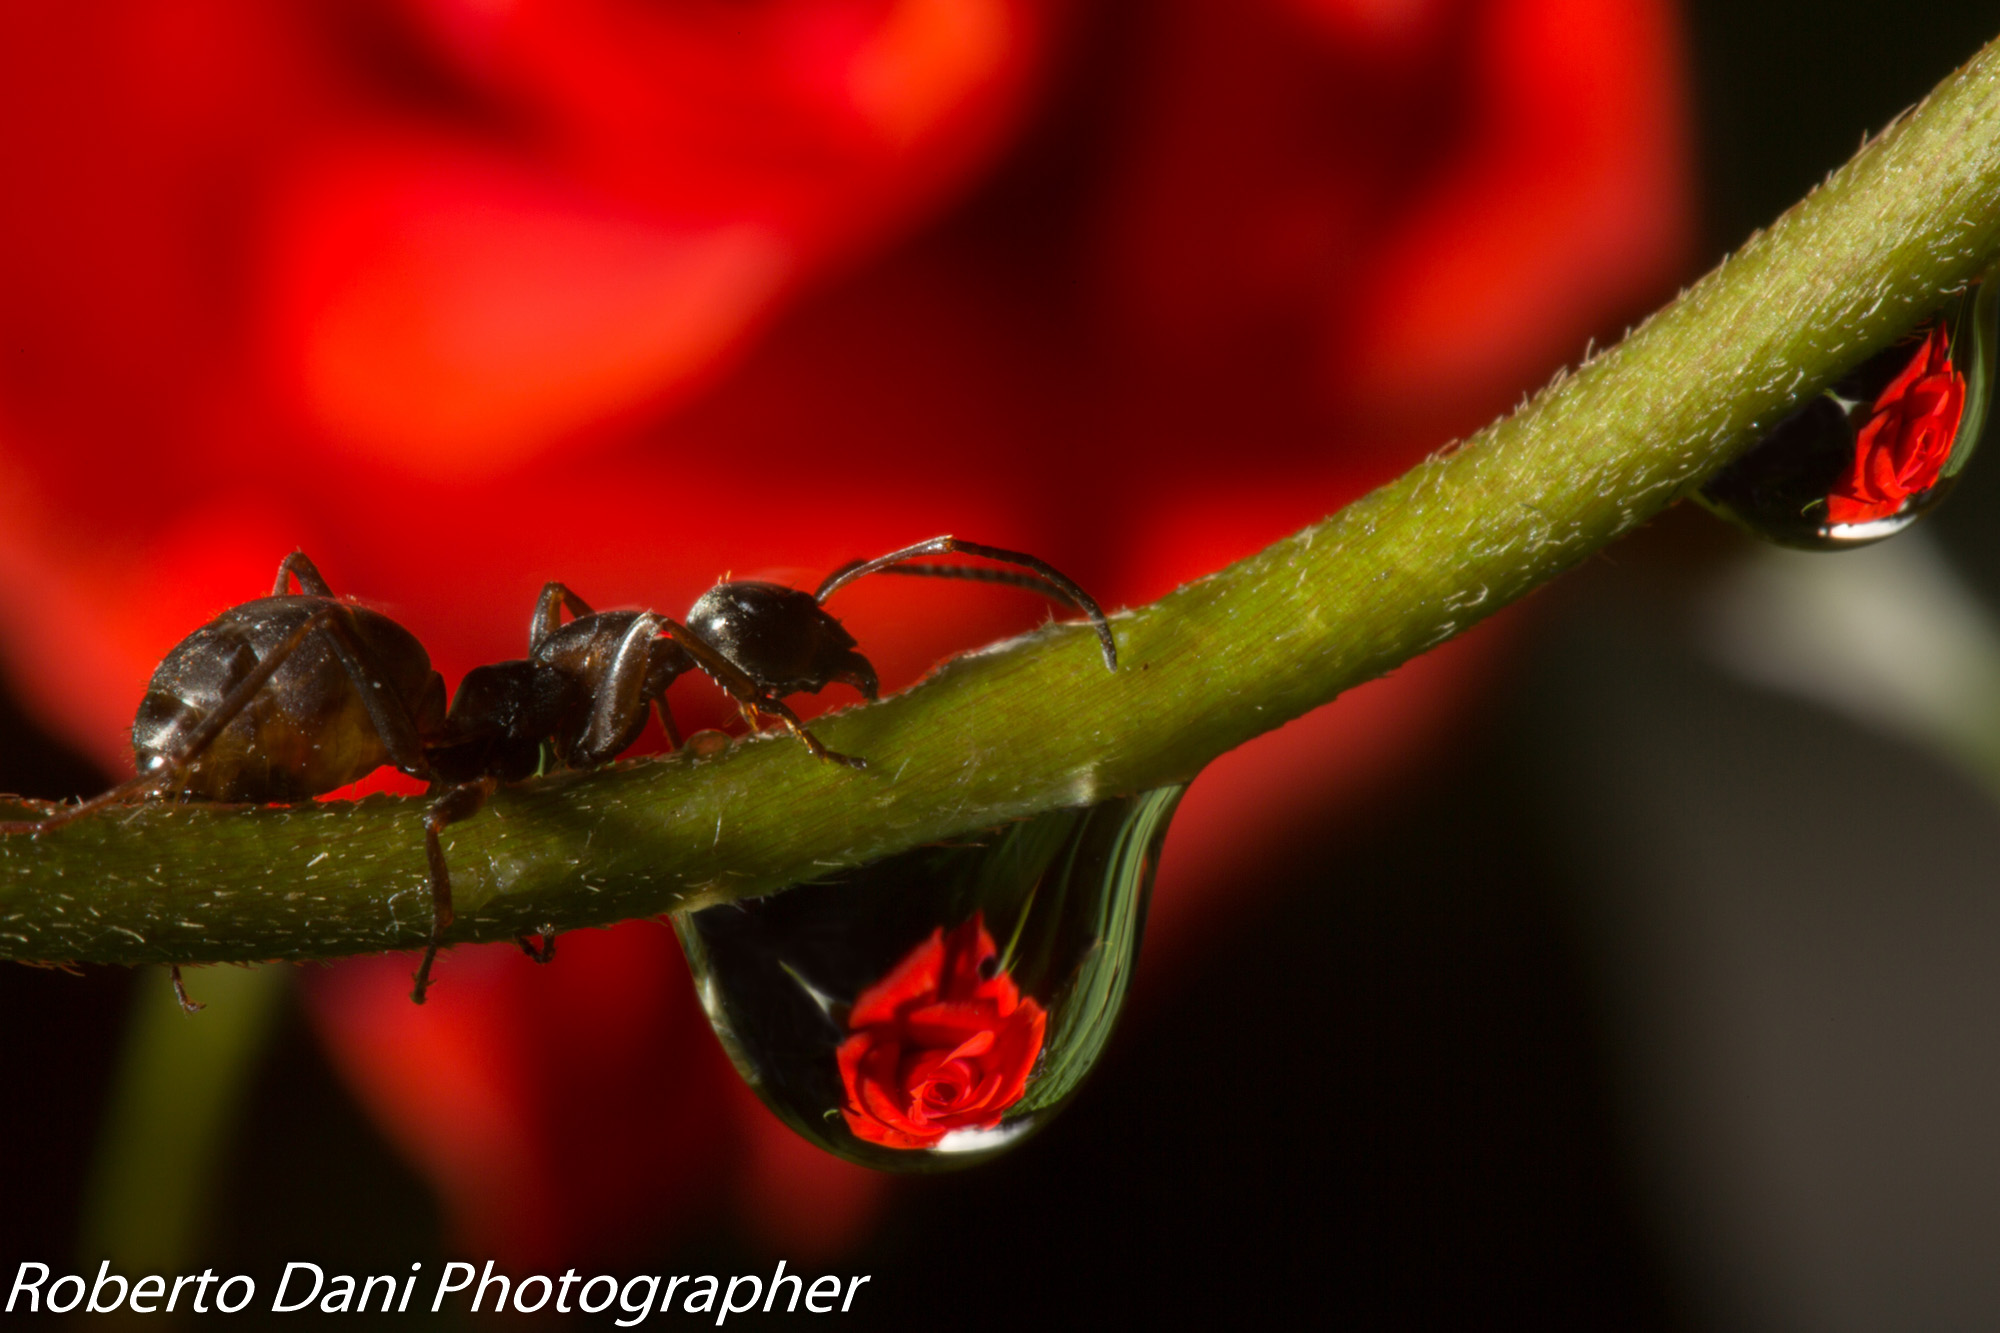 Ant and Rose...